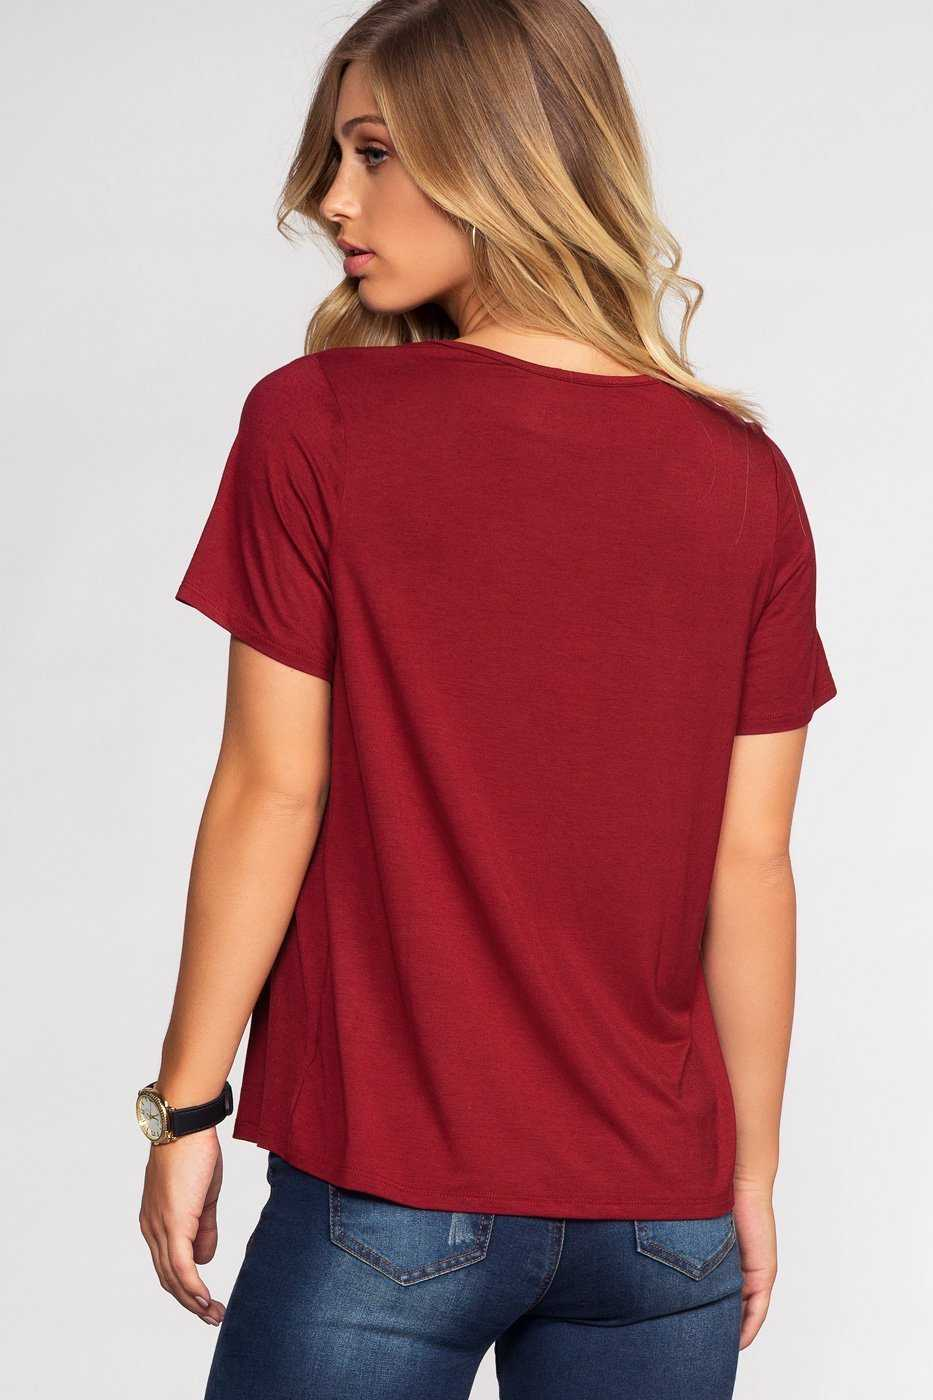 Tops - Kaia Cross Over Top - Burgundy